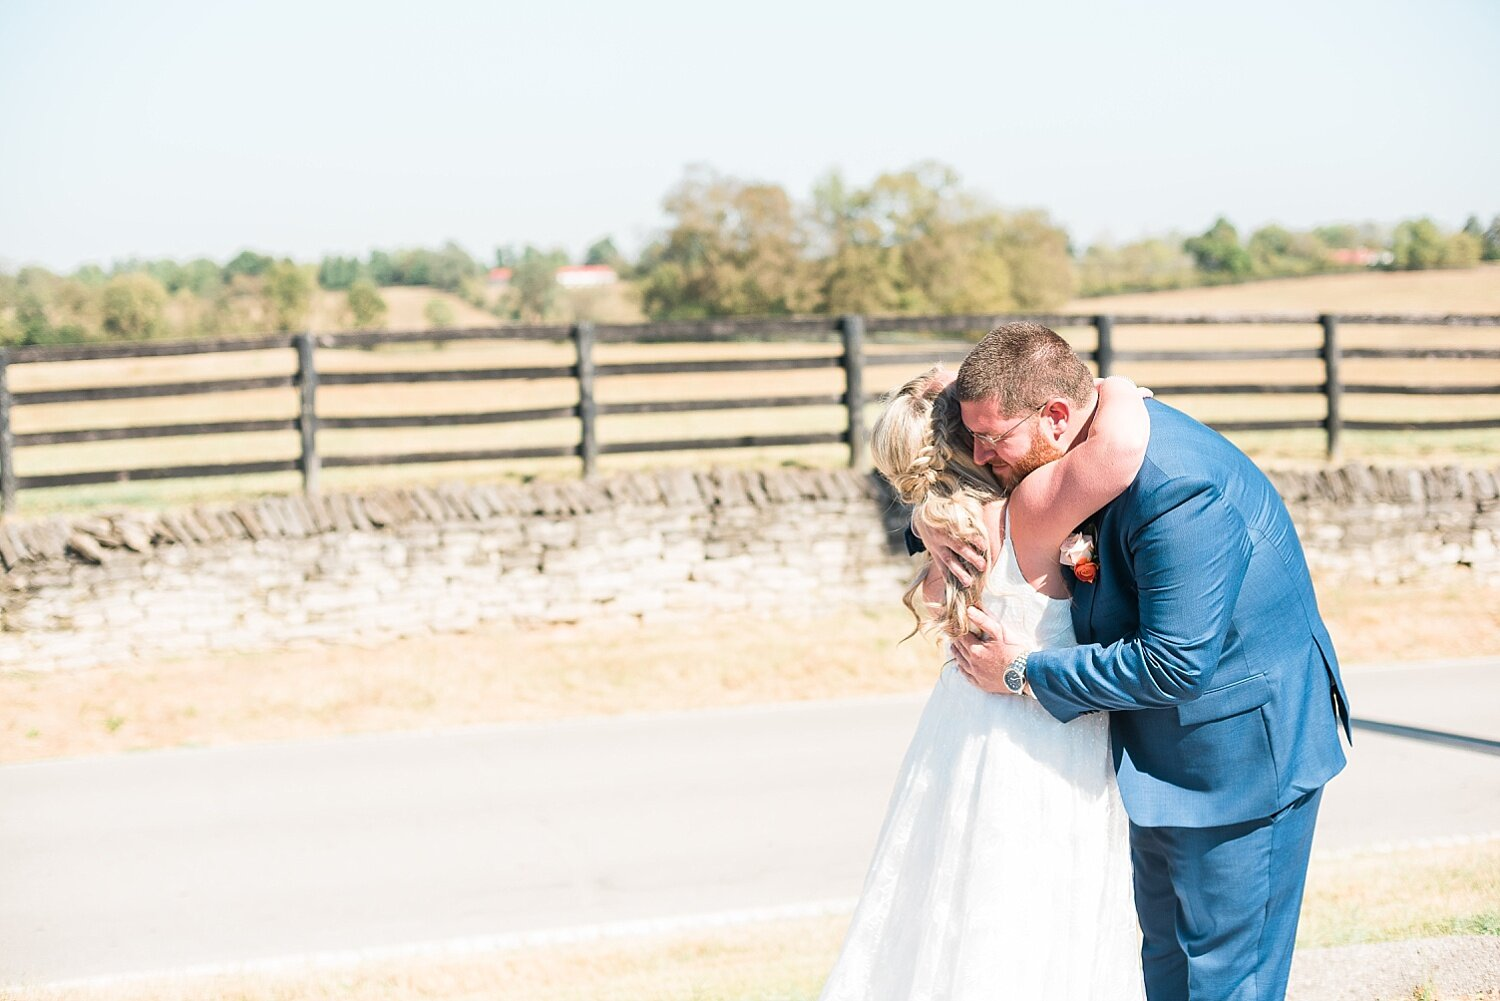 Amy and Reza had a sweet first look with the beautiful horse farms in the distance.